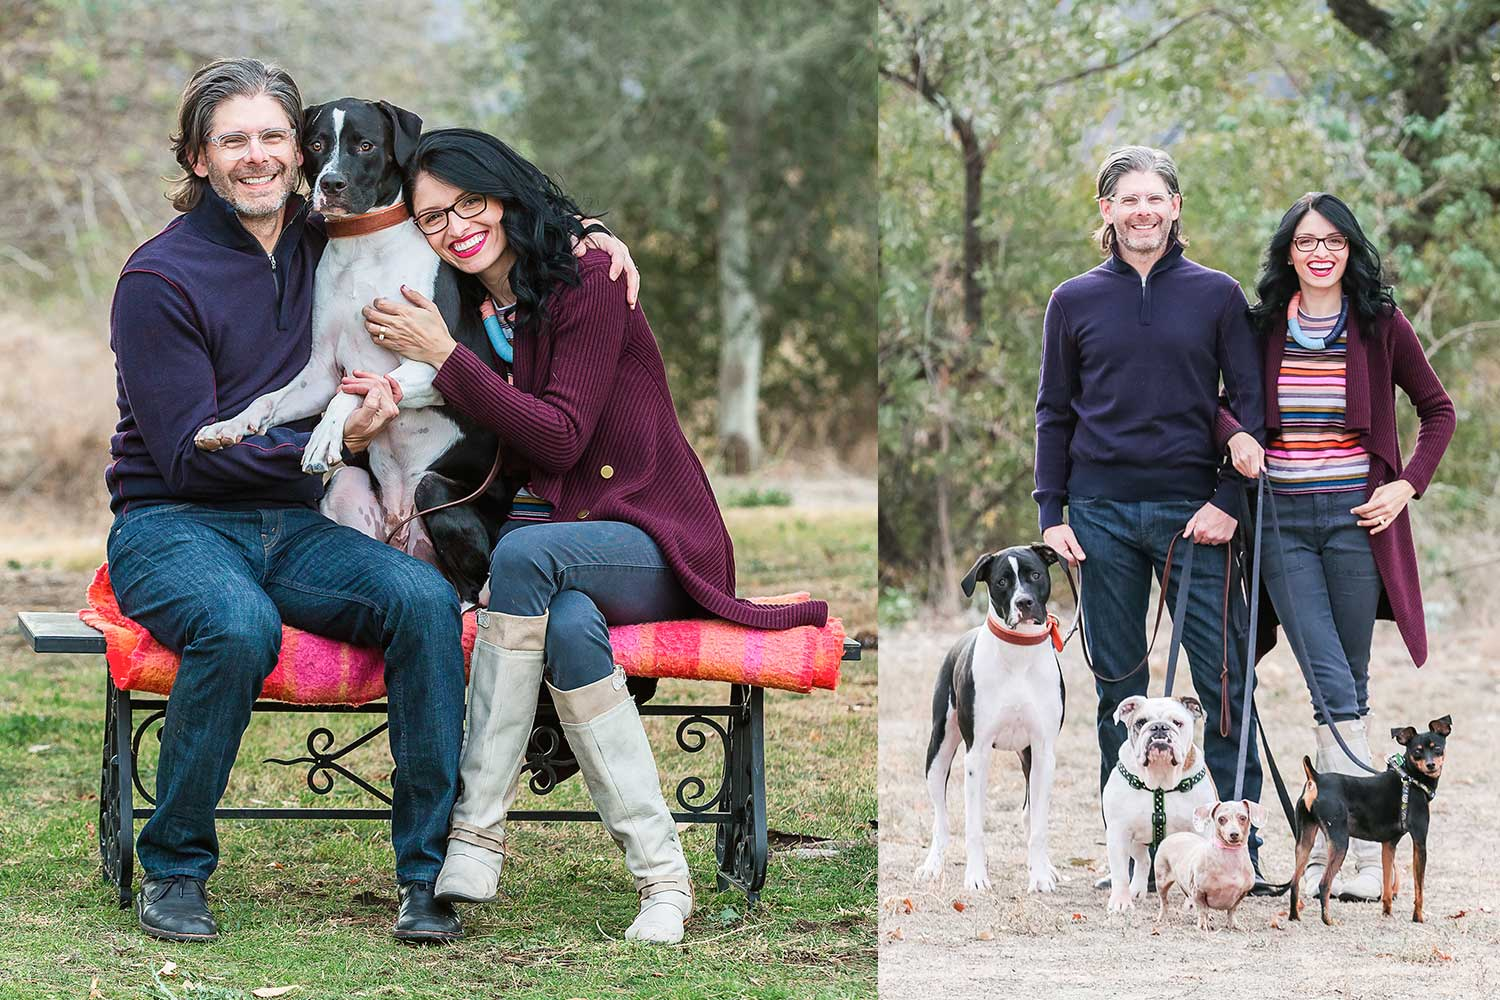 Jenna-Pilant-Design+Style-Blogger-How-To-Style-A-Family-Photoshoot-With-Dogs-3